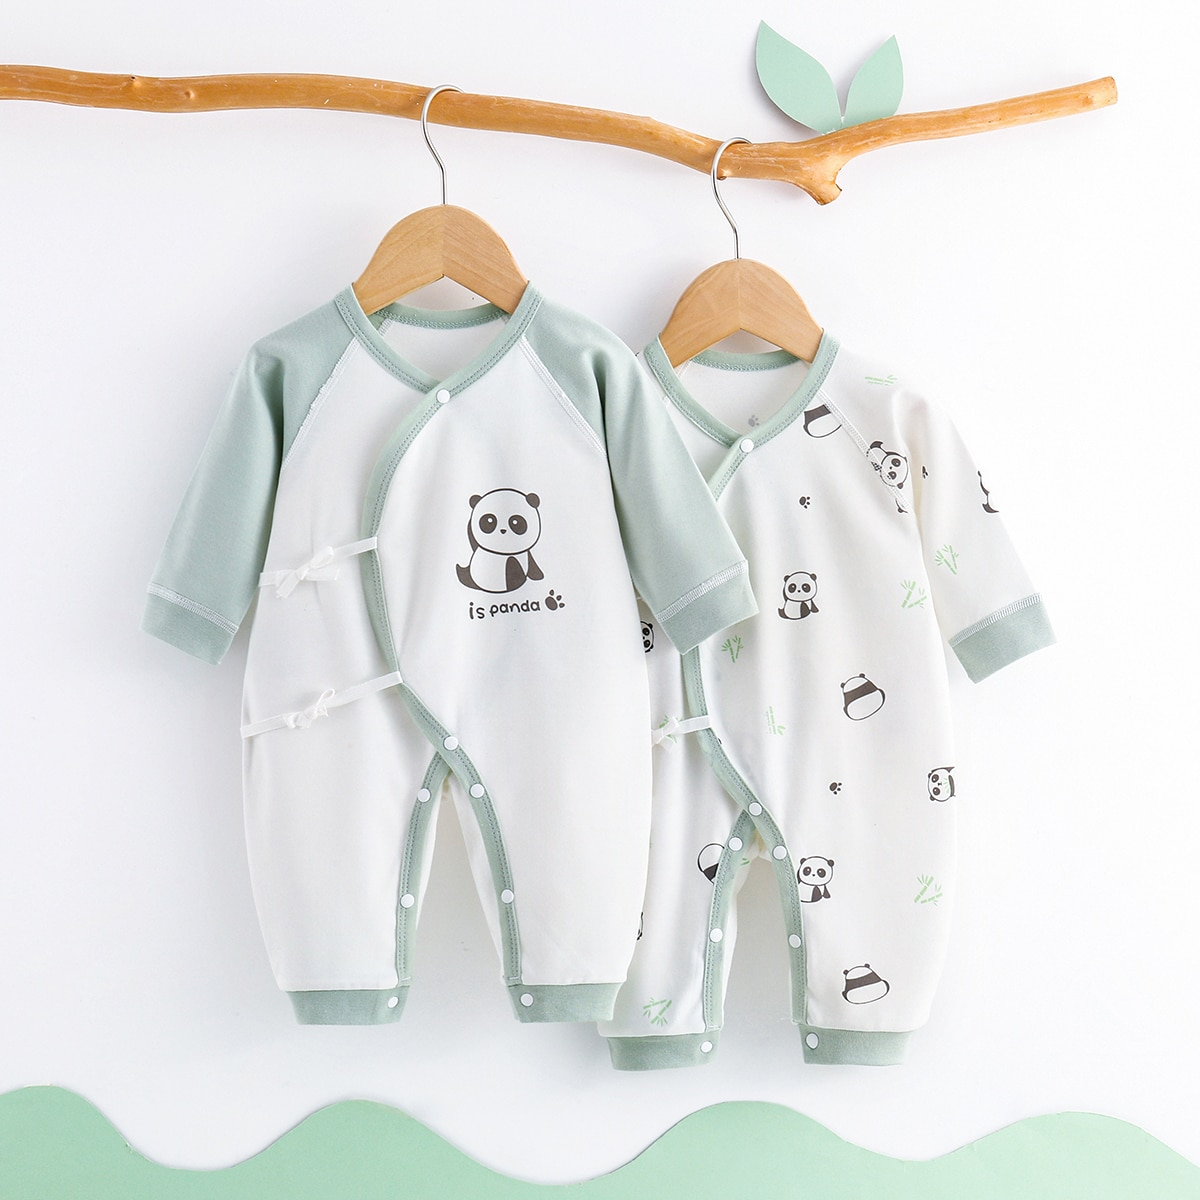 Baby Rompers Newborn Baby Clothes For Girls Boys Long Sleeve ropa bebe Jumpsuit Baby Clothing  Outfits cute newborn baby clothing long sleeve cotton solid baby rompers peter pan collar girls boys clothes jumpsuit infant costumes